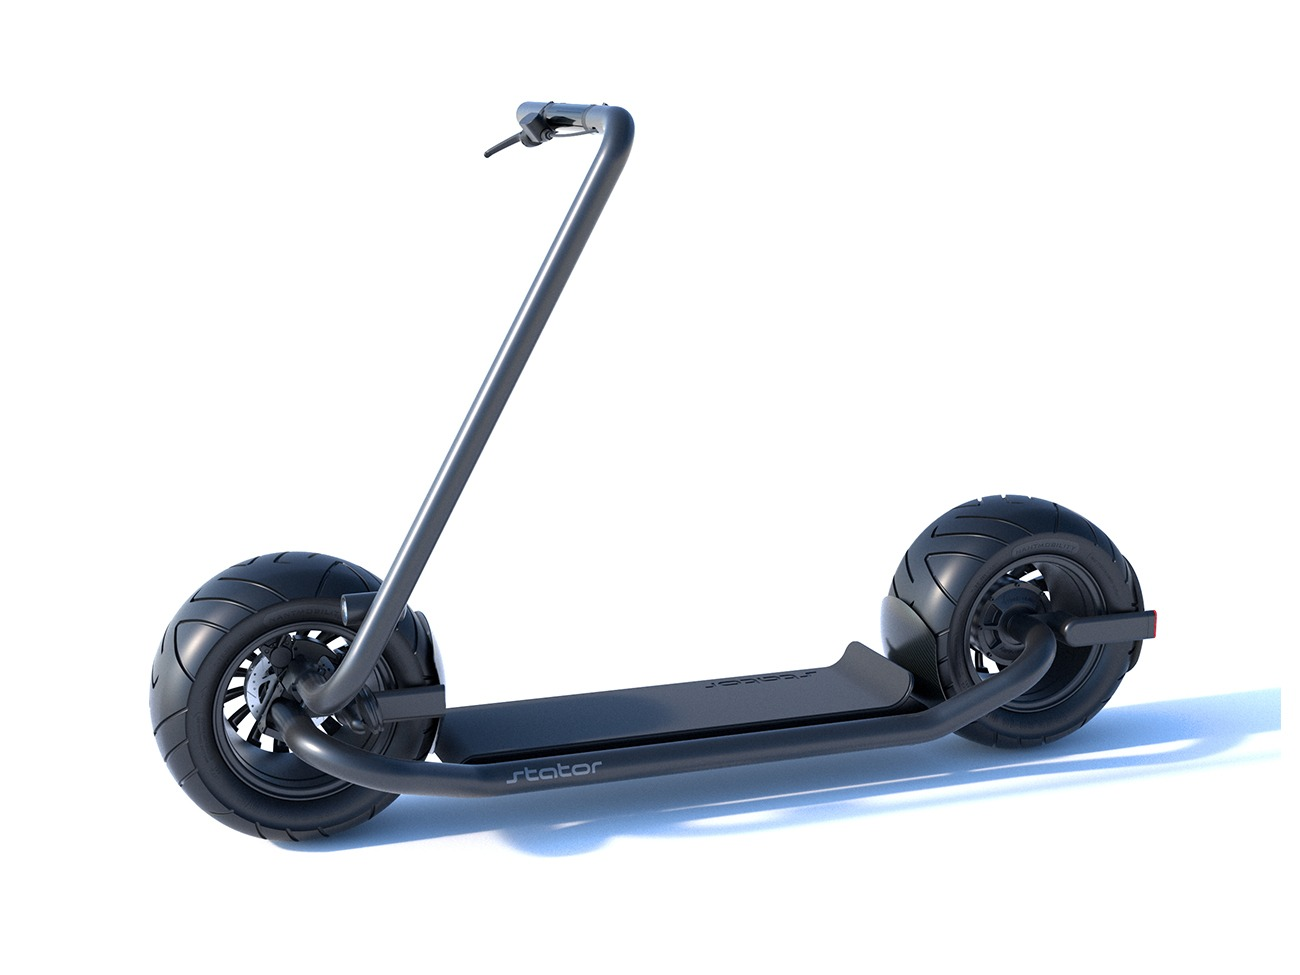 Stator scooter right-side-tilt-view